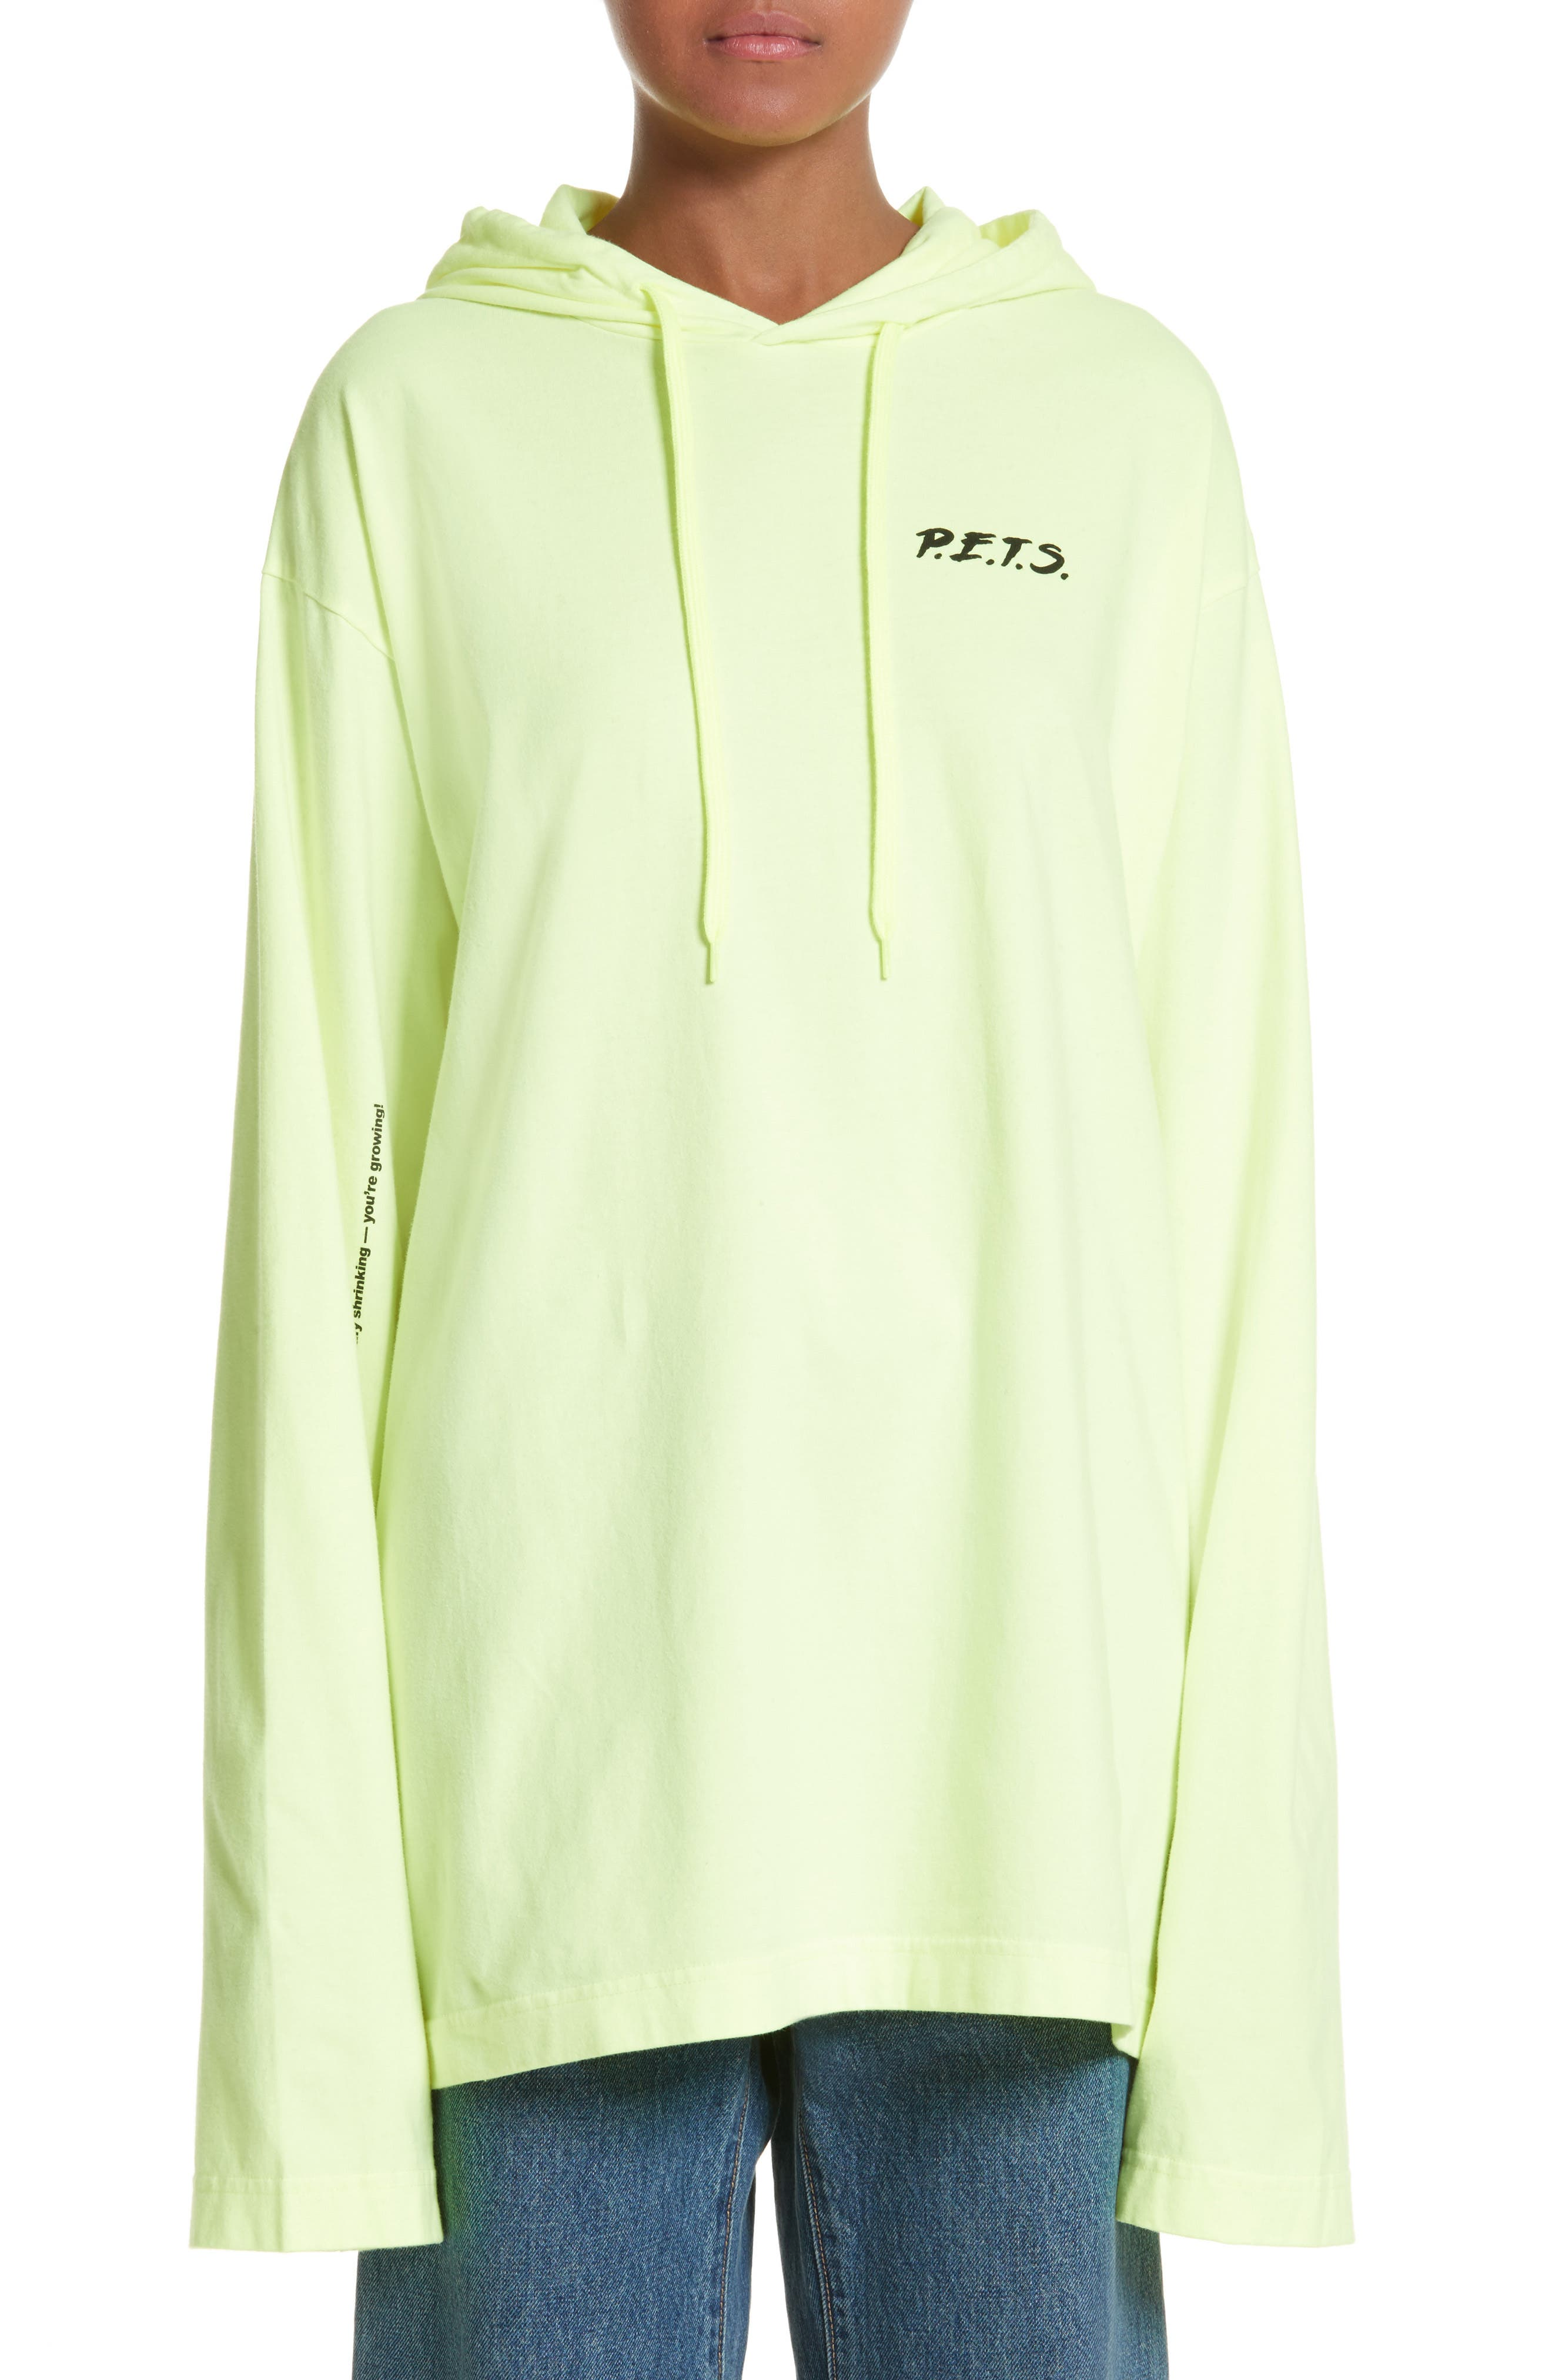 Alternate Image 1 Selected - Vetements P.E.T.S. Jersey Pullover Hoodie